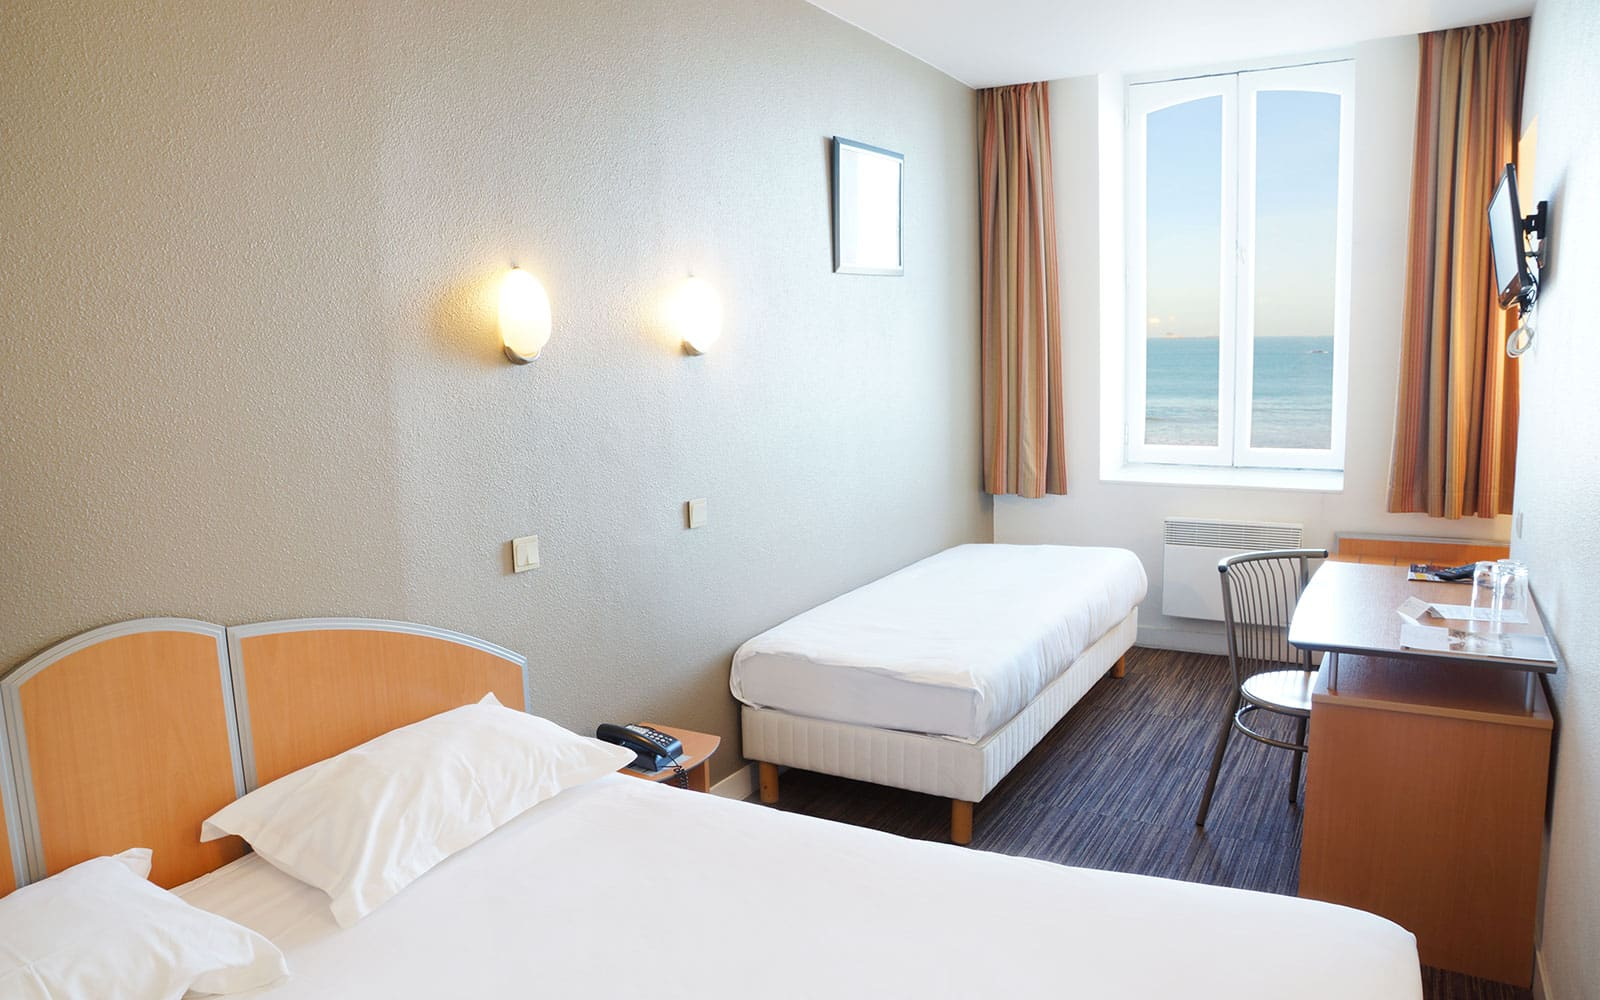 H tel 3 toiles vue mer saint malo le jersey for Hotel 3 etoiles